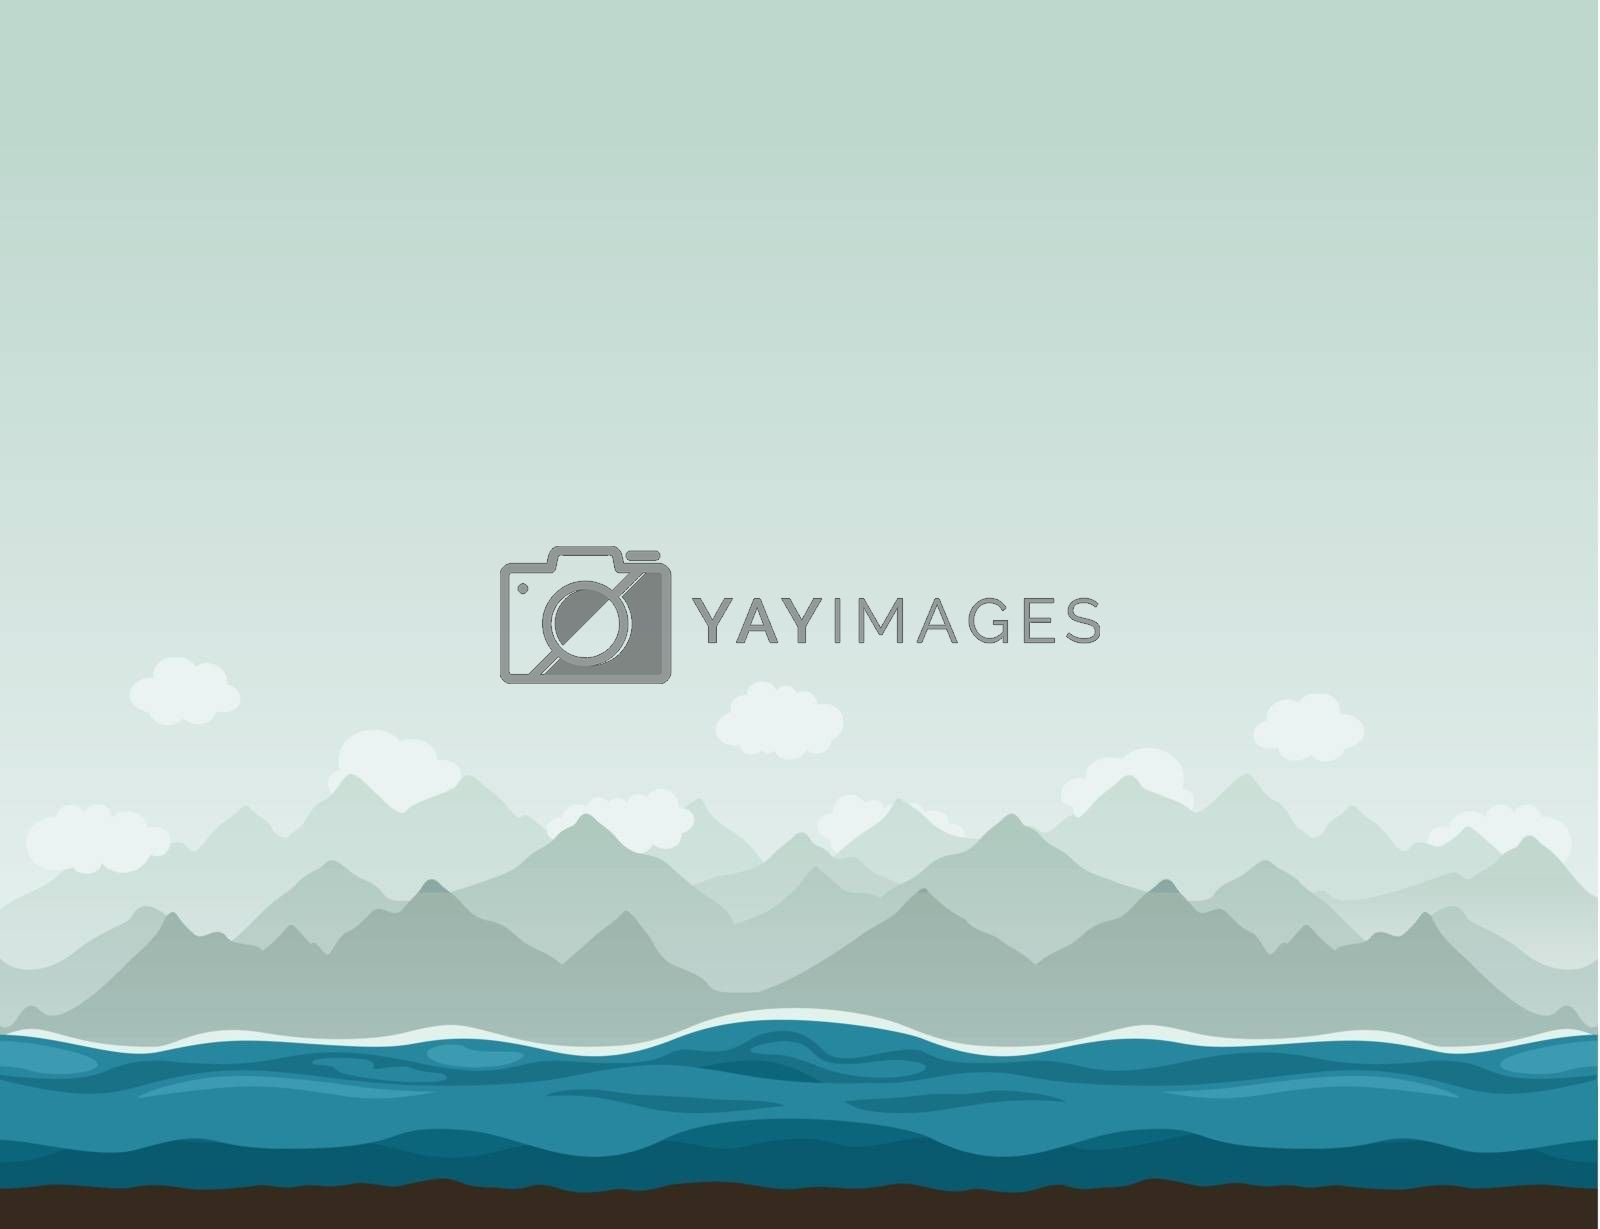 The sea against mountains. A vector illustration